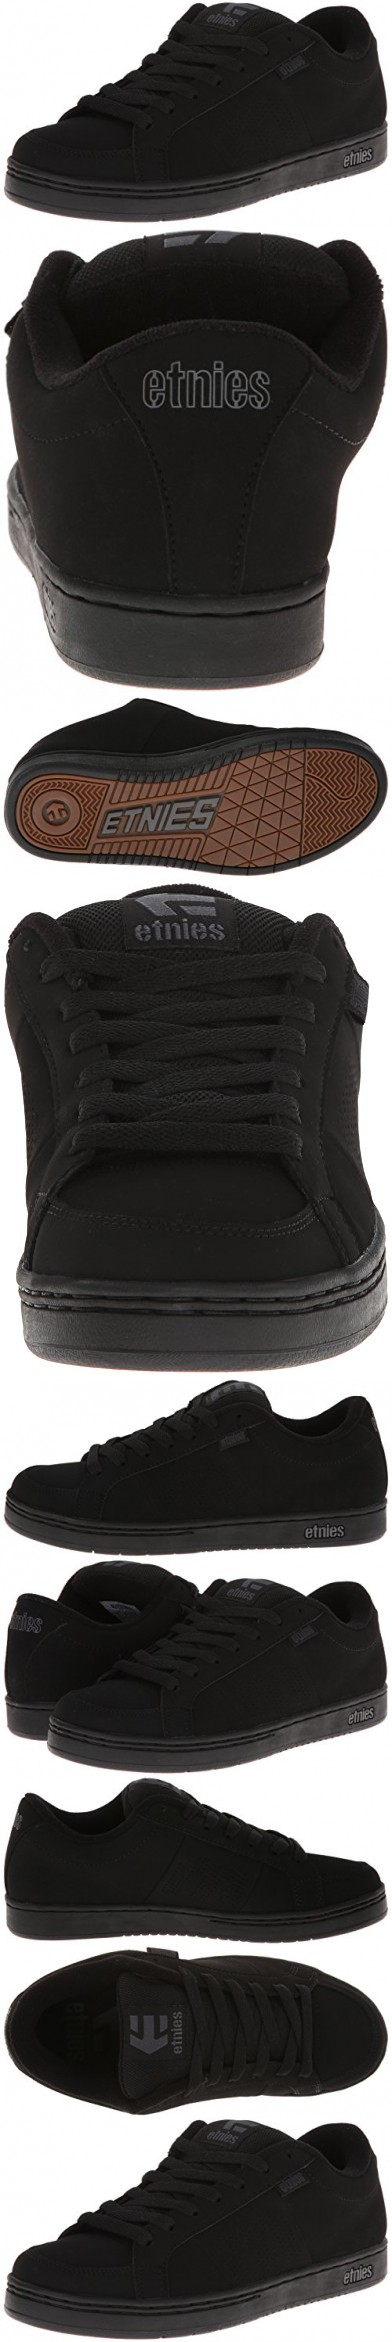 c839518573 Etnies Men s KINGPIN Skateboarding Shoe